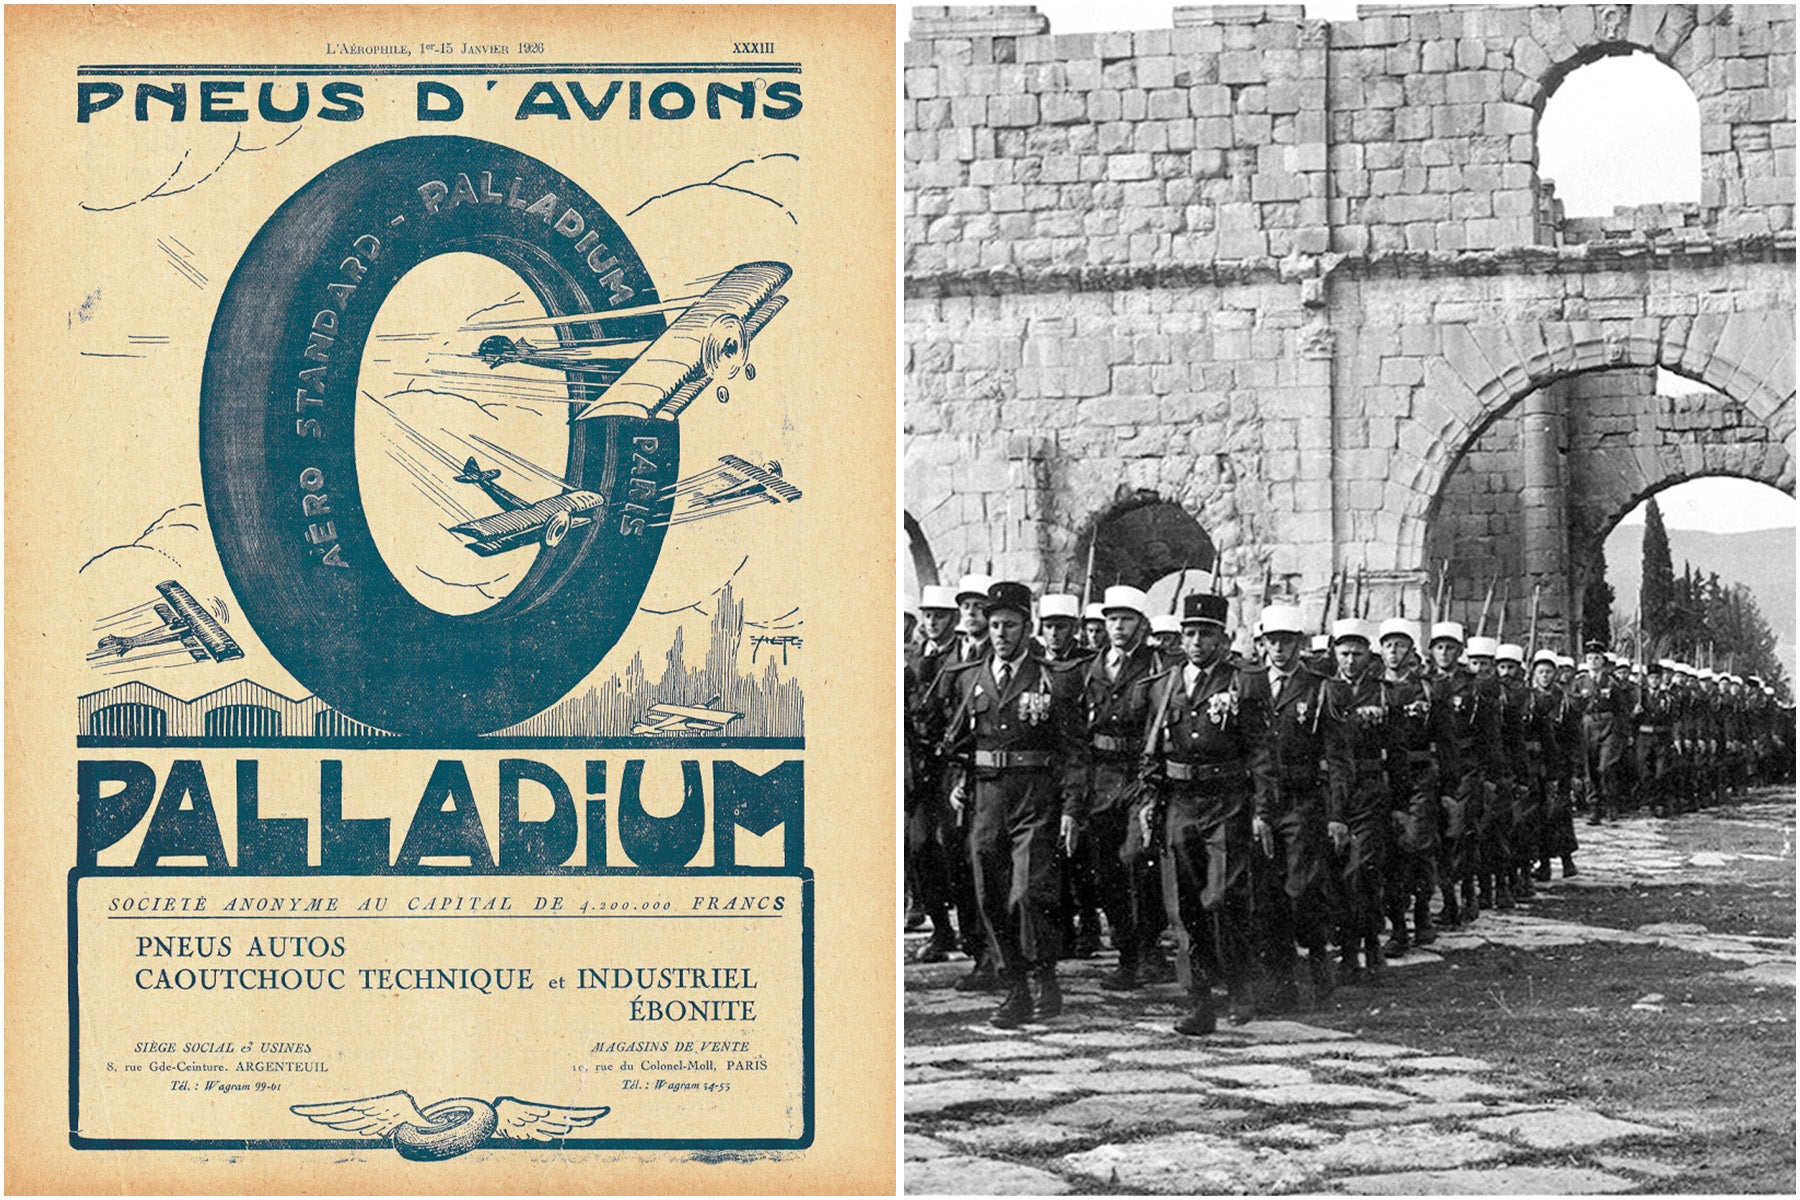 Palladium heritage - from aeroplane tyres to boots for the foreign legion